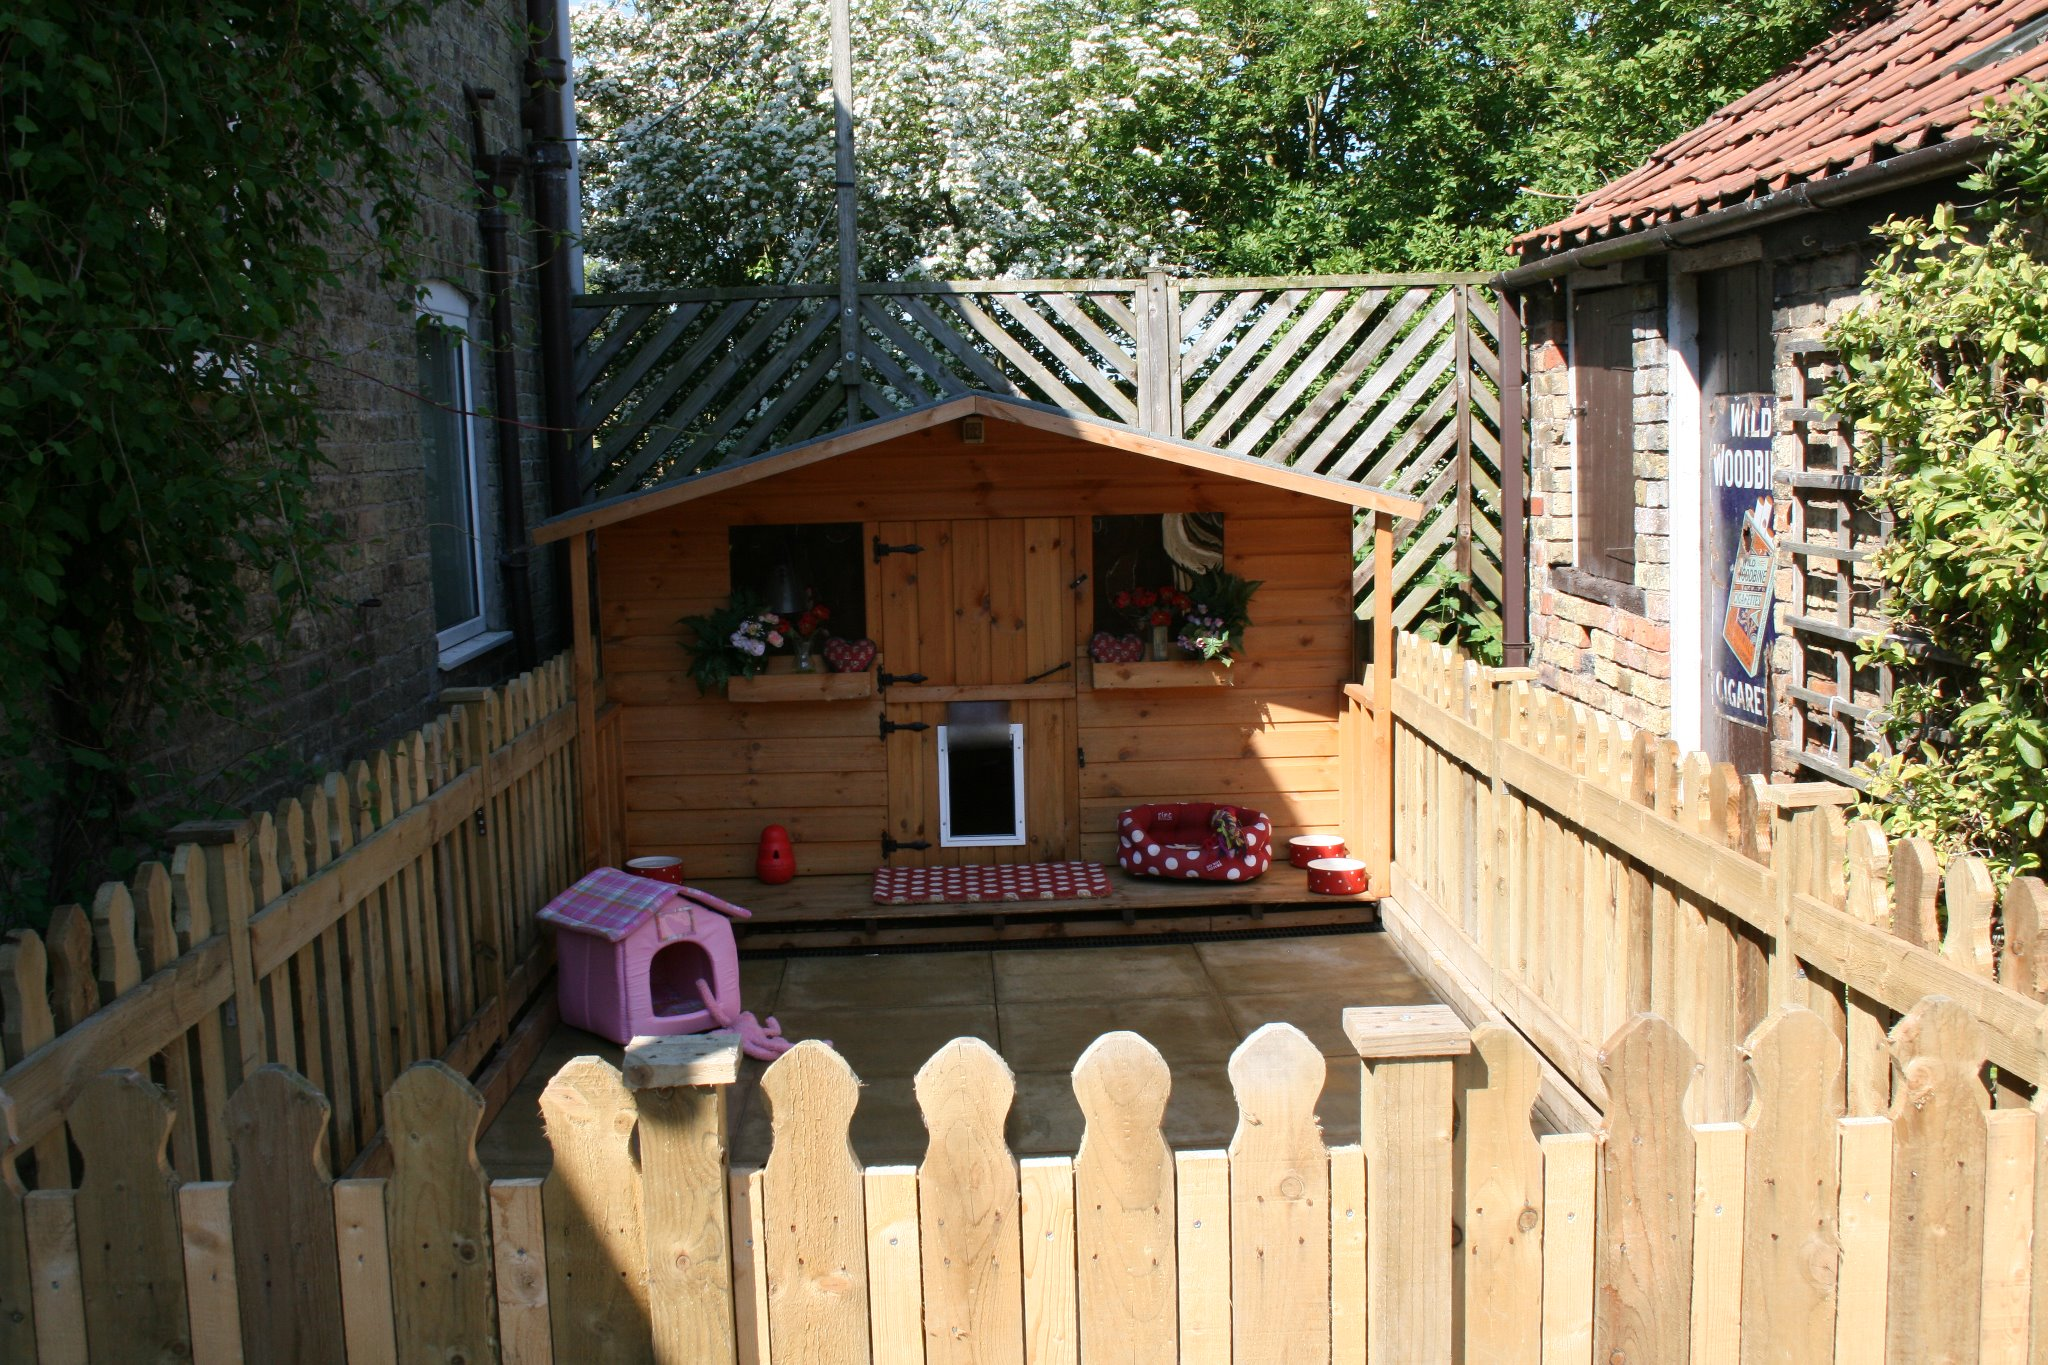 The 'Pug Playhouse'